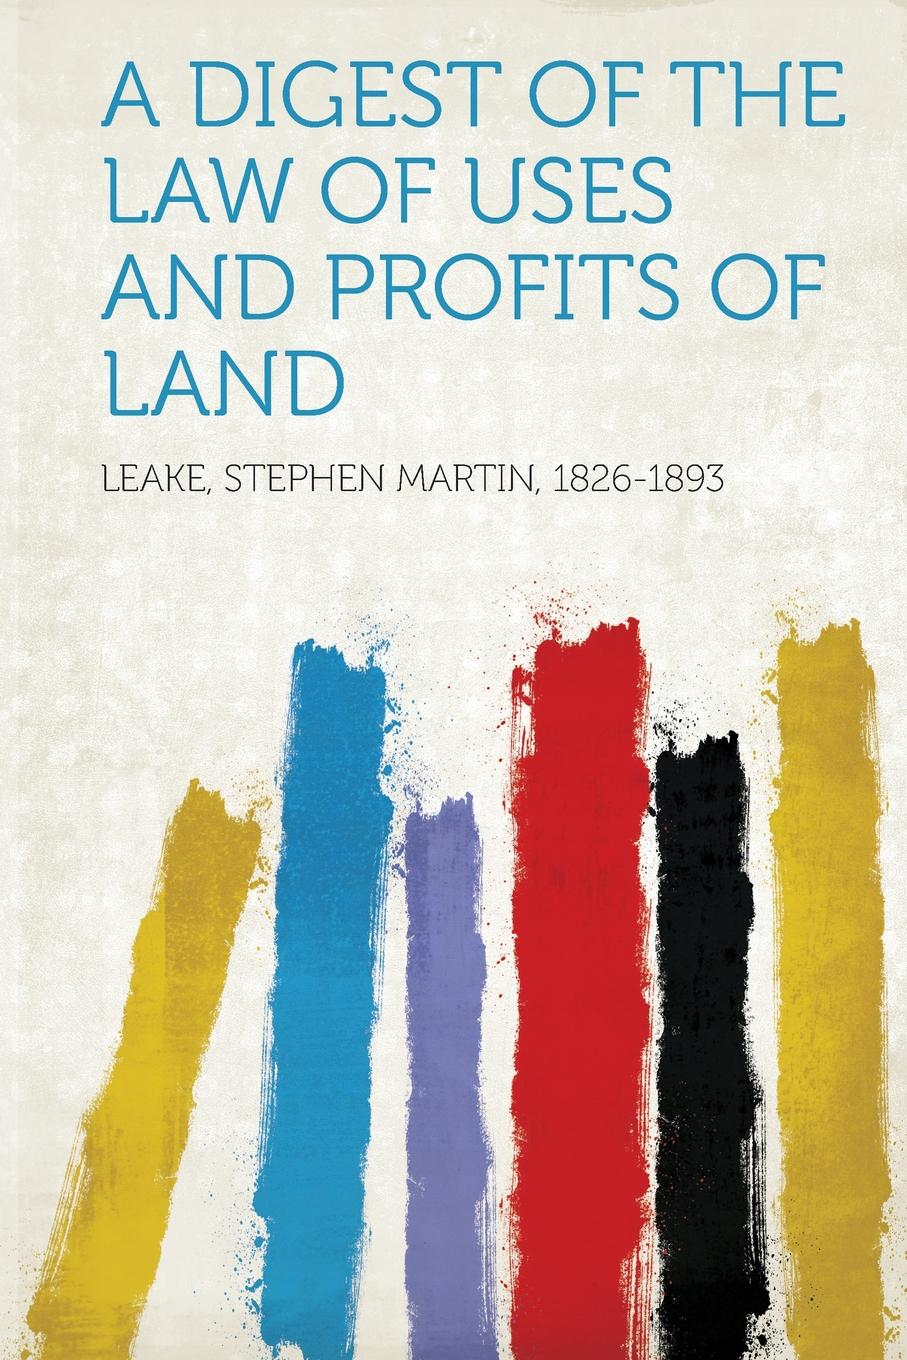 Leake Stephen Martin 1826-1893 A Digest of the Law of Uses and Profits of Land